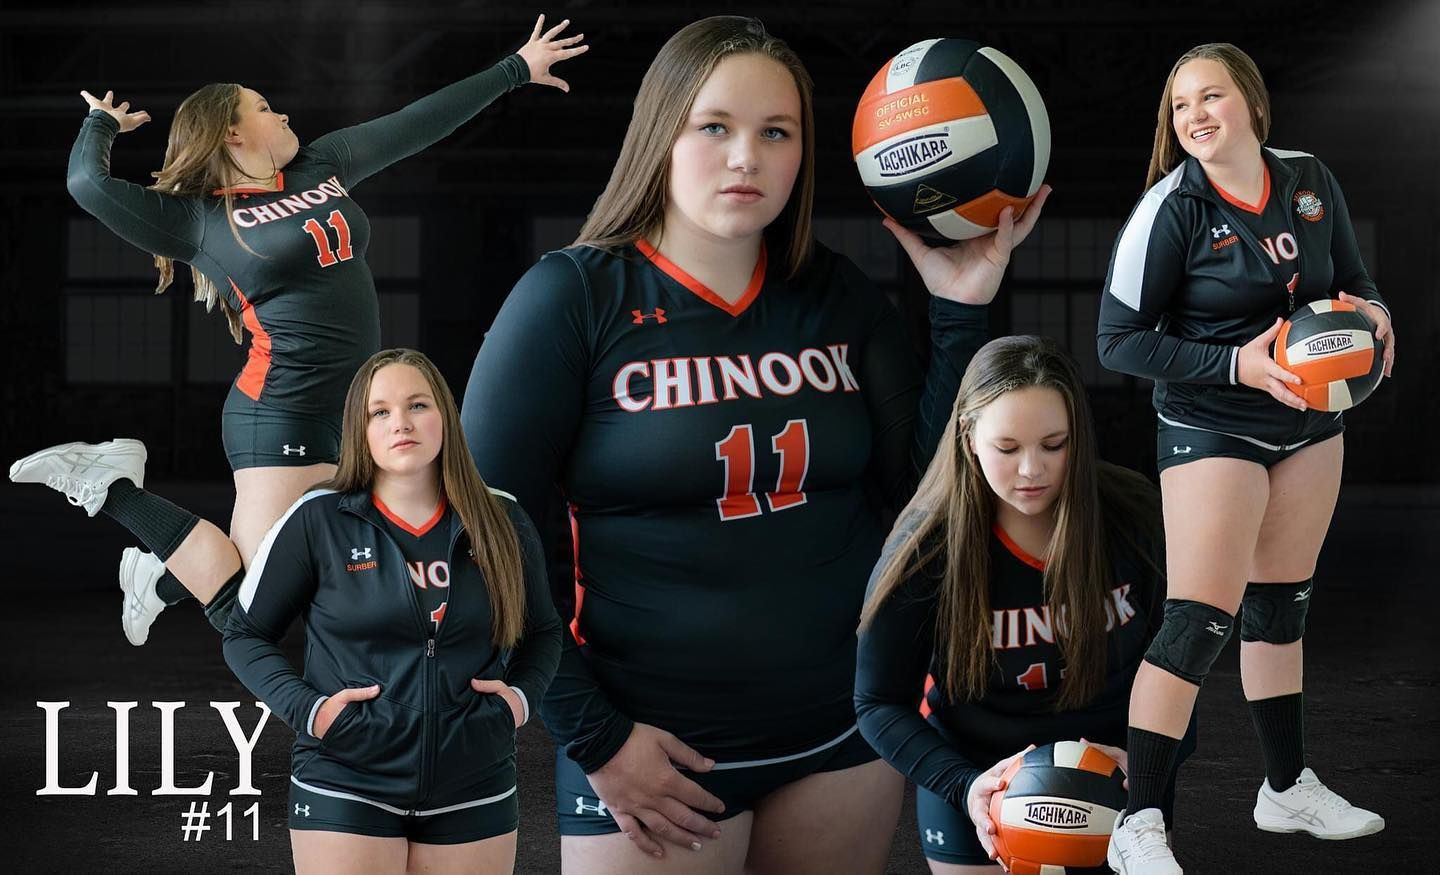 Best of luck to Lily and all the Sugarbeeters on the second half of your season @lily.frickin.surber . . . . . #406seniors #MODERNsenior #collectivelycreate #epicsenior #chinookhighschool #volleyballmontage #montanacreatives #montanaportraitphotographer #montanaportraitphotography #montanaseniorphotographer #photographyeveryday #seniorgirlstyle #seniorinspiration #seniorinspire #seniorpictures #seniorstyleguide #senioryear #shawnabensonphotography #shawnabensonseniors #theseniorcollective